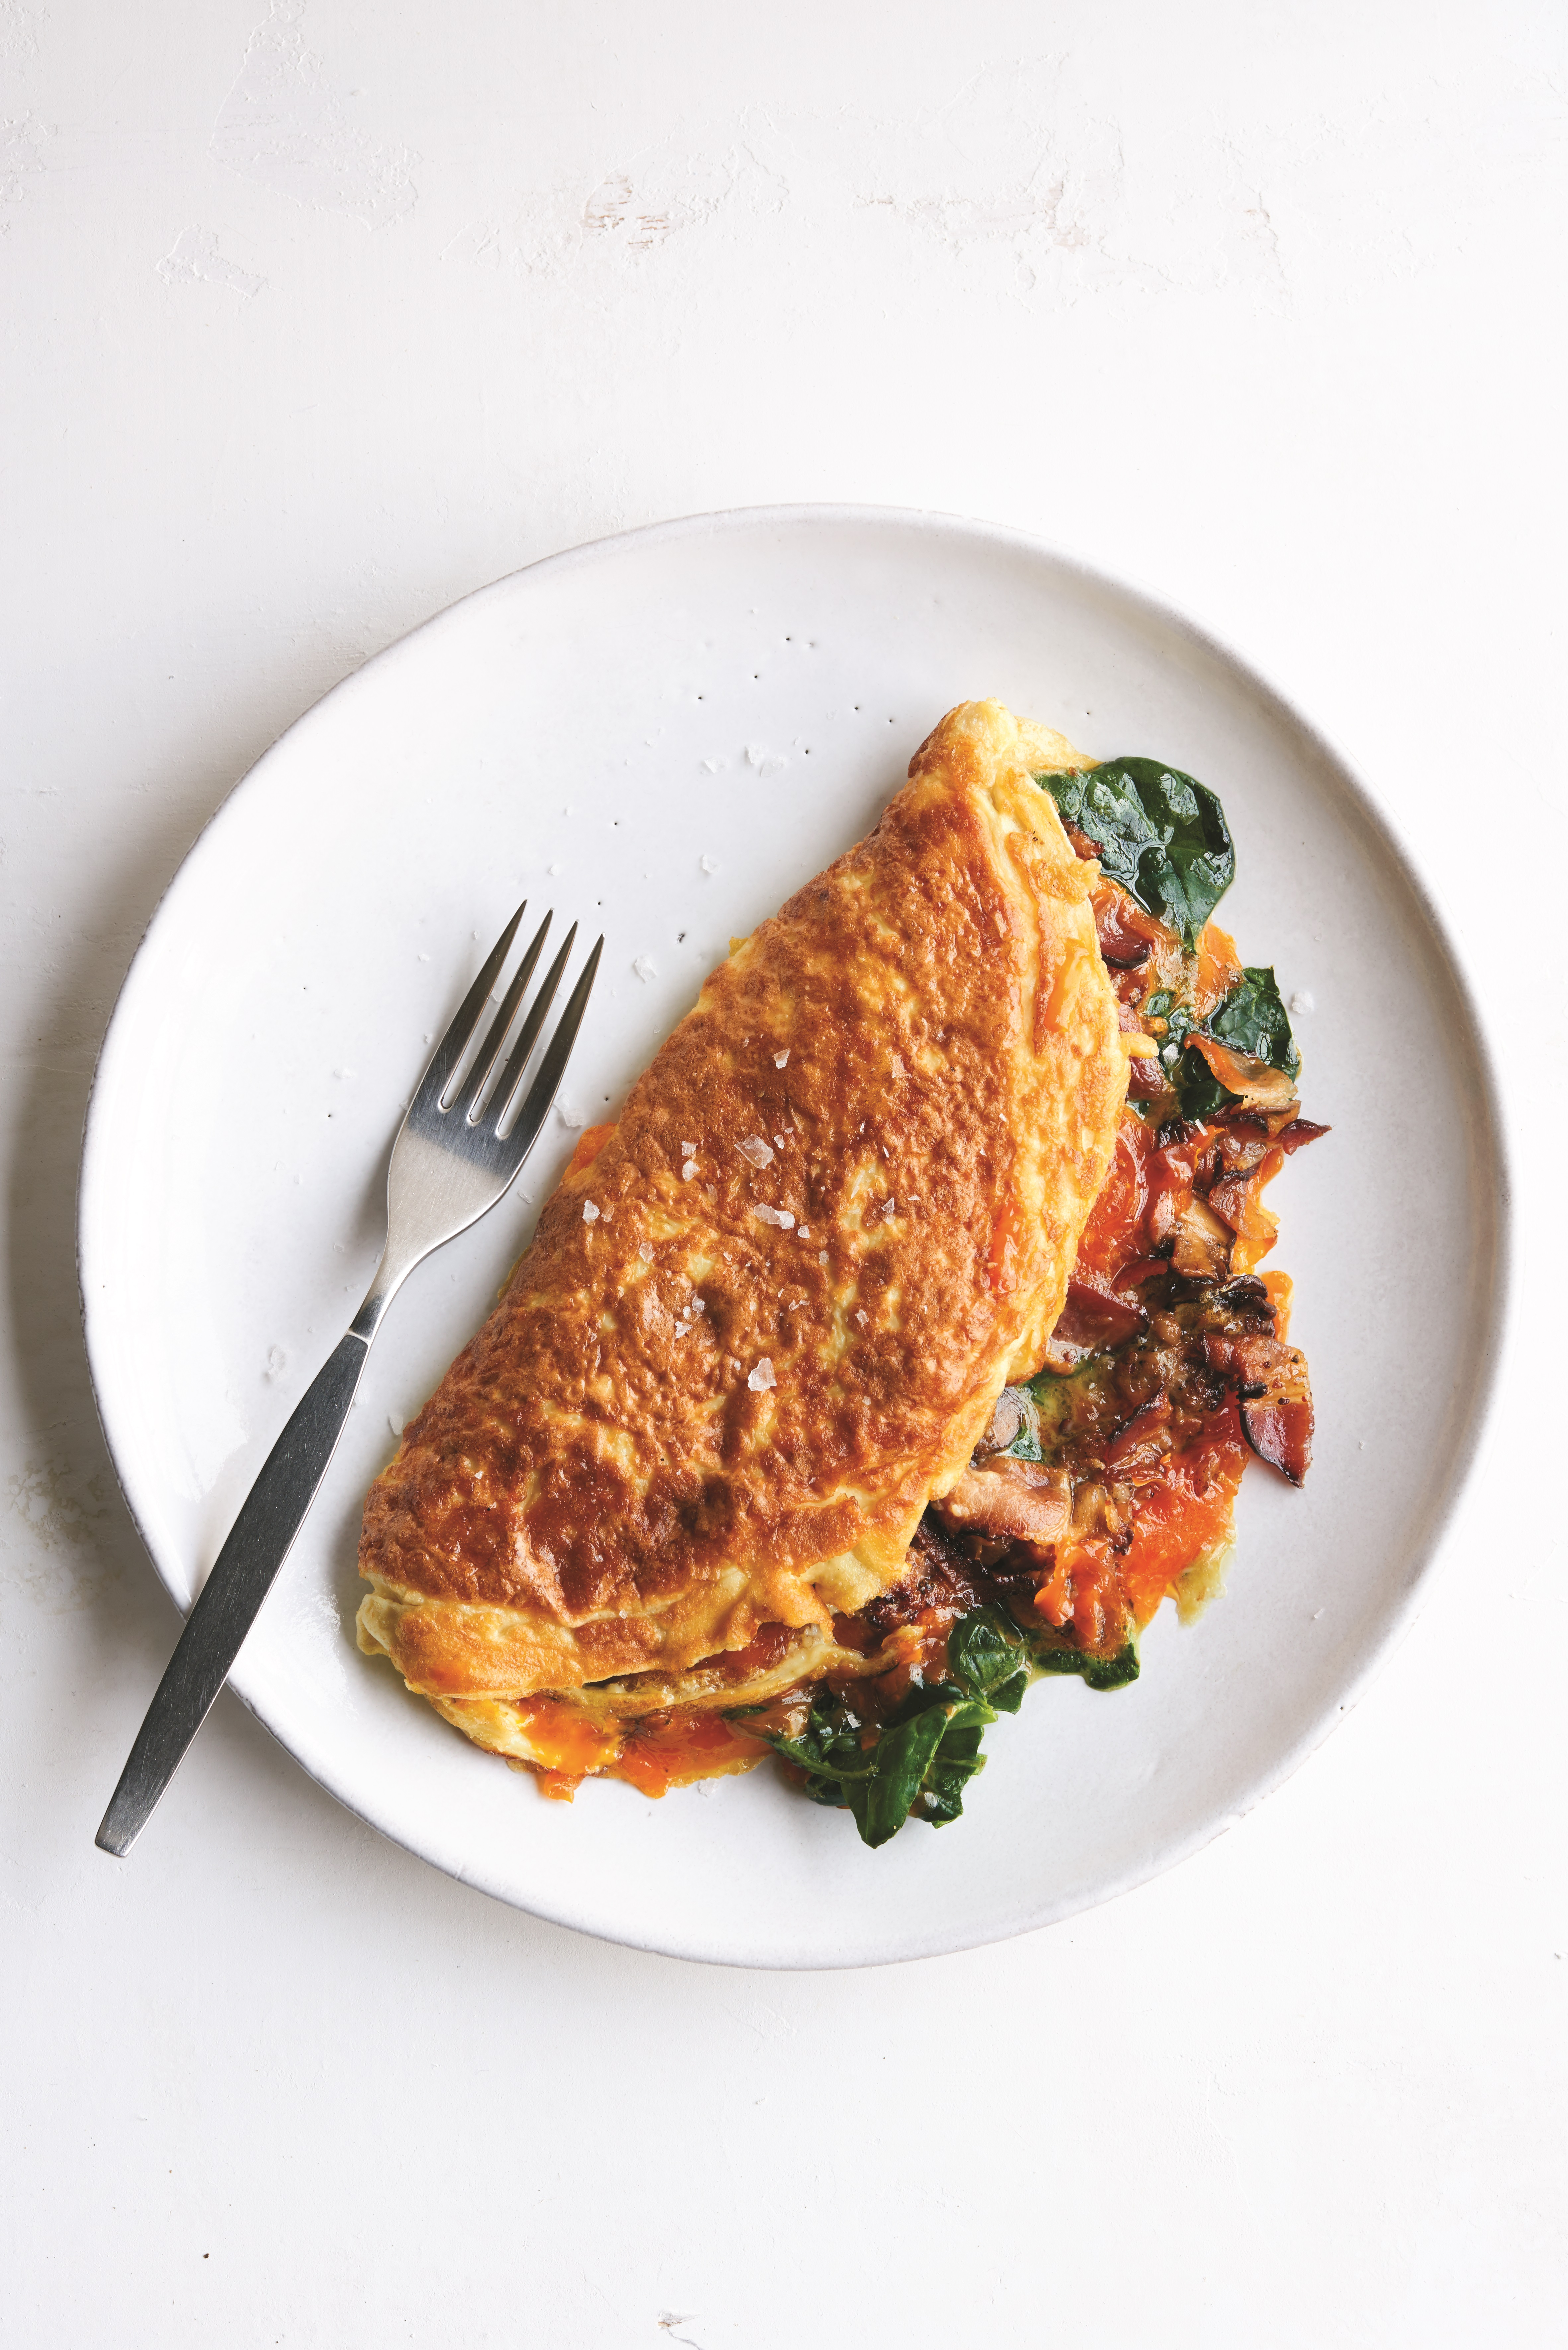 Recipe: How to Make the Fluffiest Omelet Ever